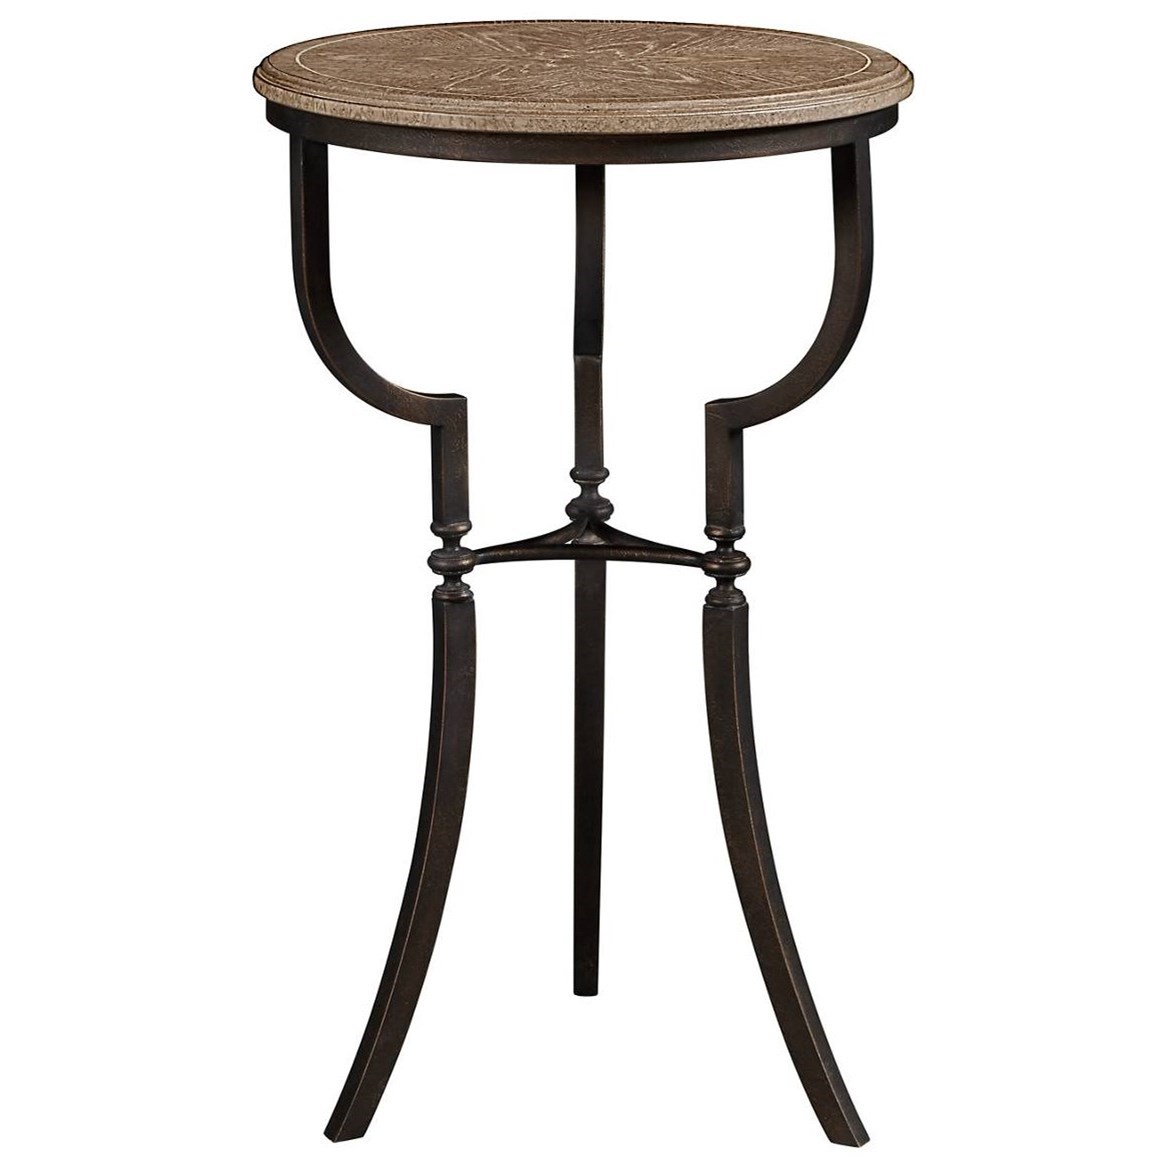 Stanley furniture wethersfield estate 518 15 16 martini for Stanley furniture